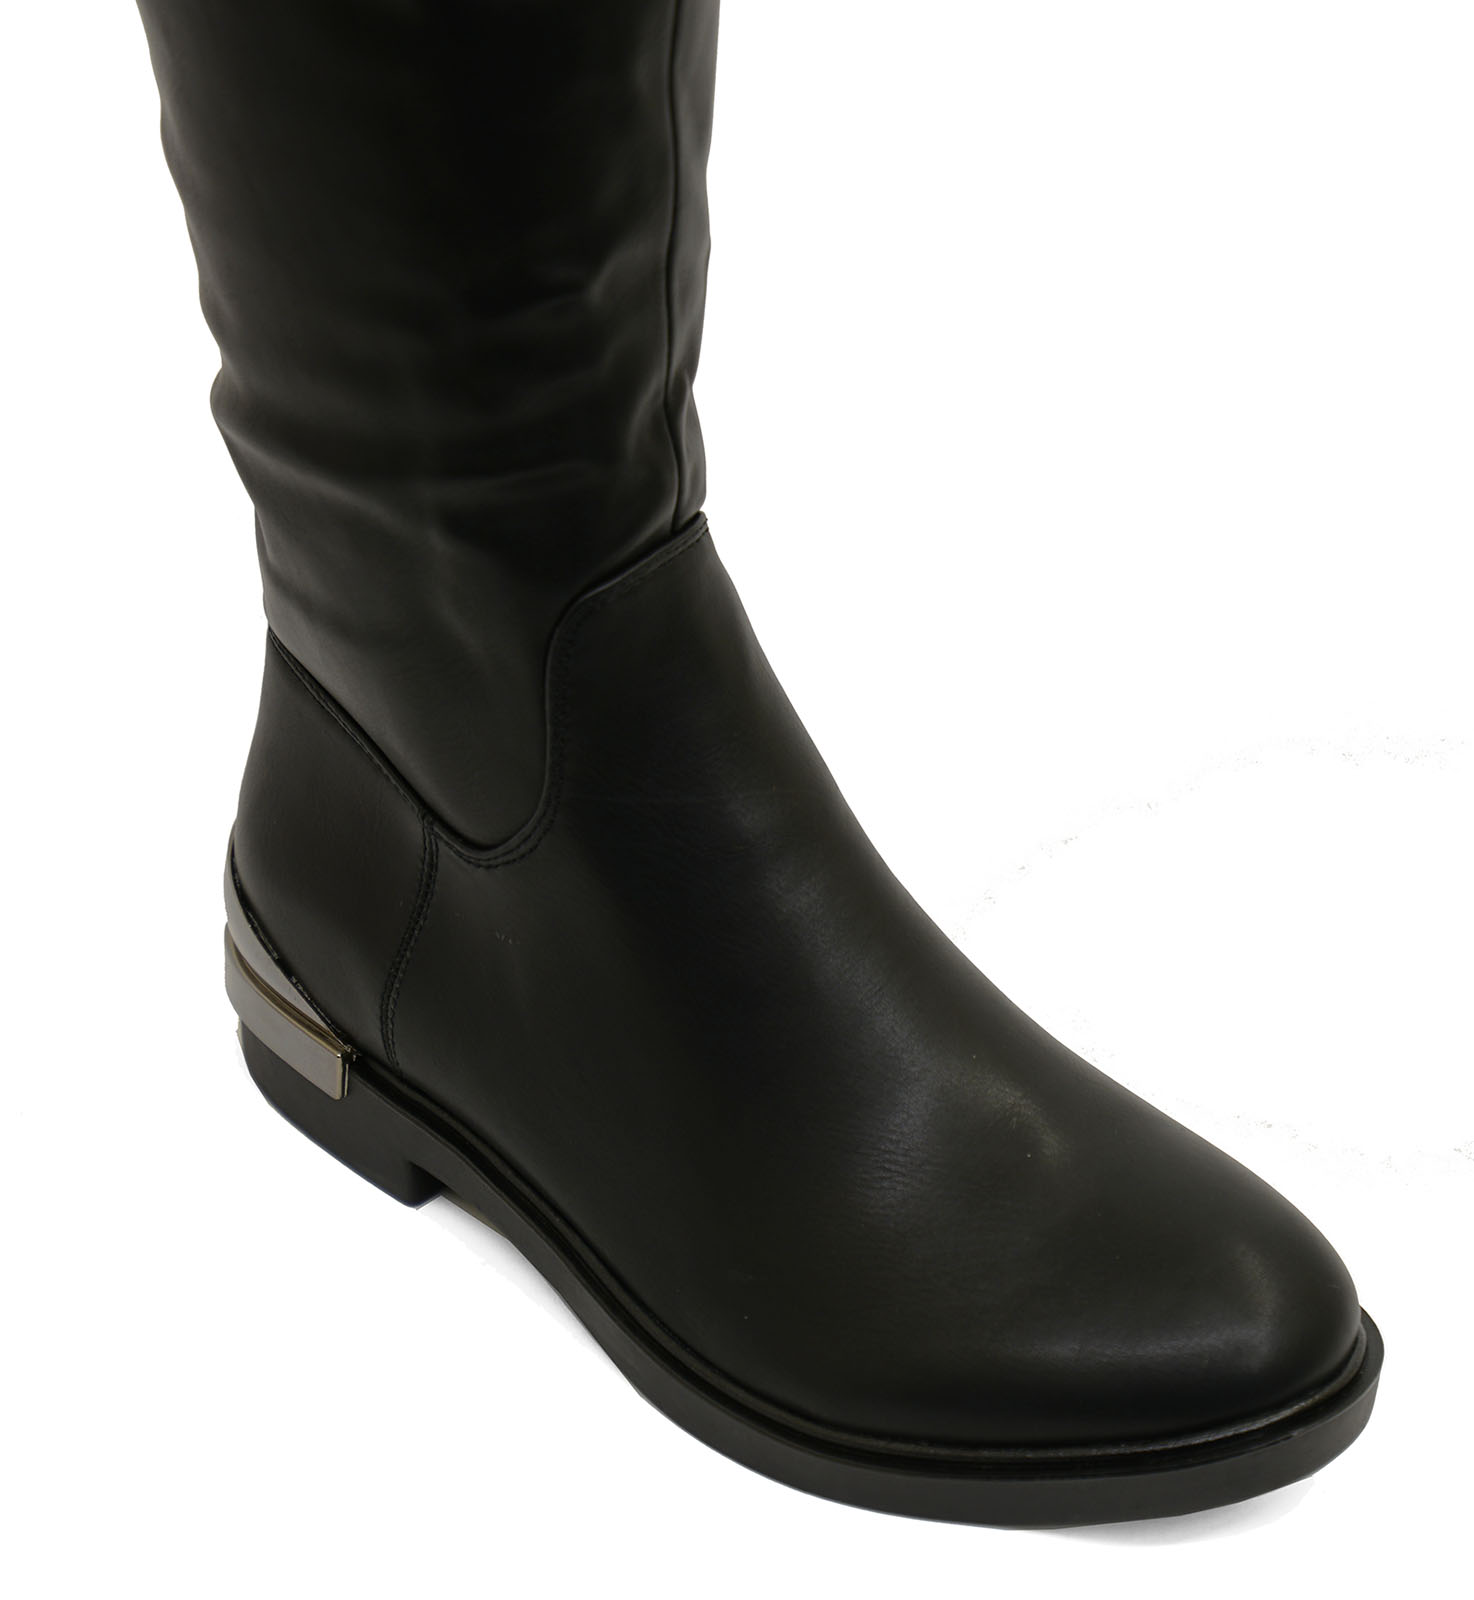 thumbnail 11 - LADIES-BLACK-FLAT-OVER-THE-KNEE-HIGH-TALL-ZIP-UP-RIDING-WORK-BOOTS-SHOES-UK-3-8